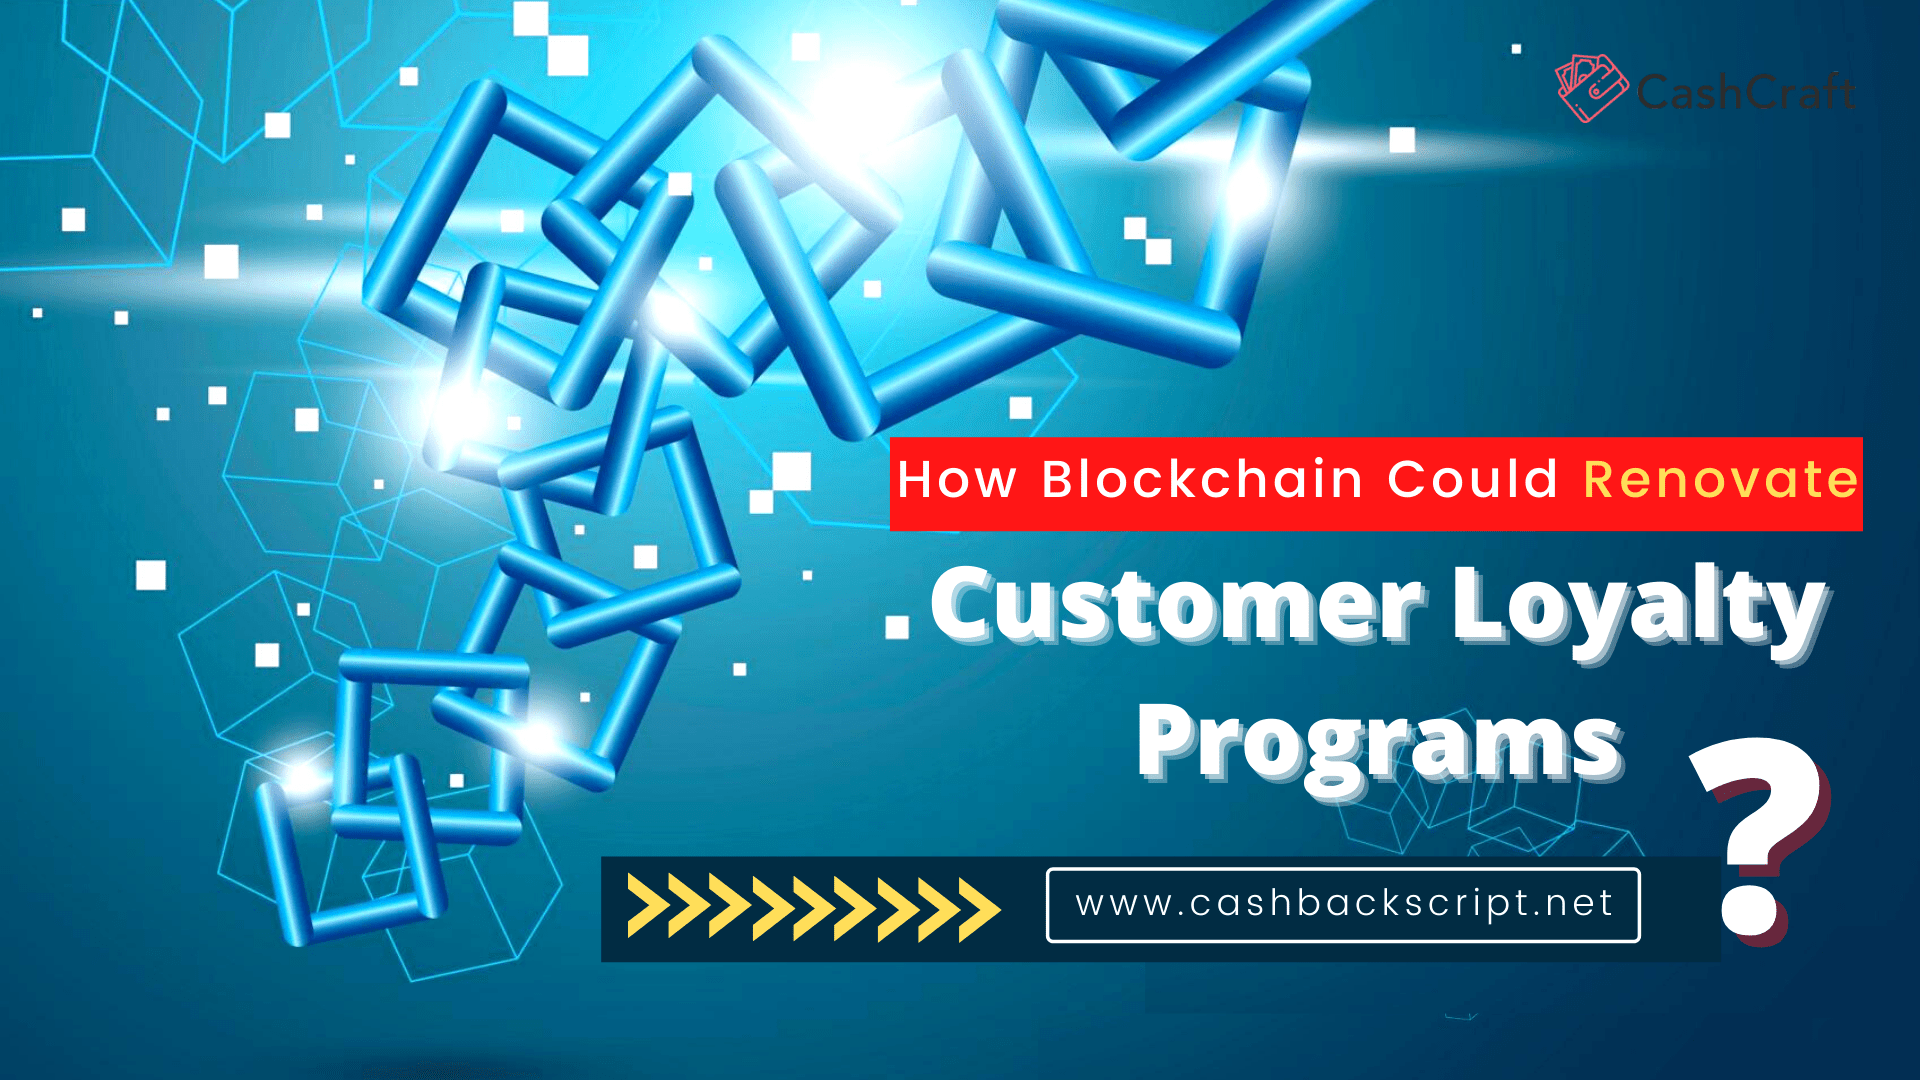 How Blockchain Could Renovate Customer Loyalty Programs?